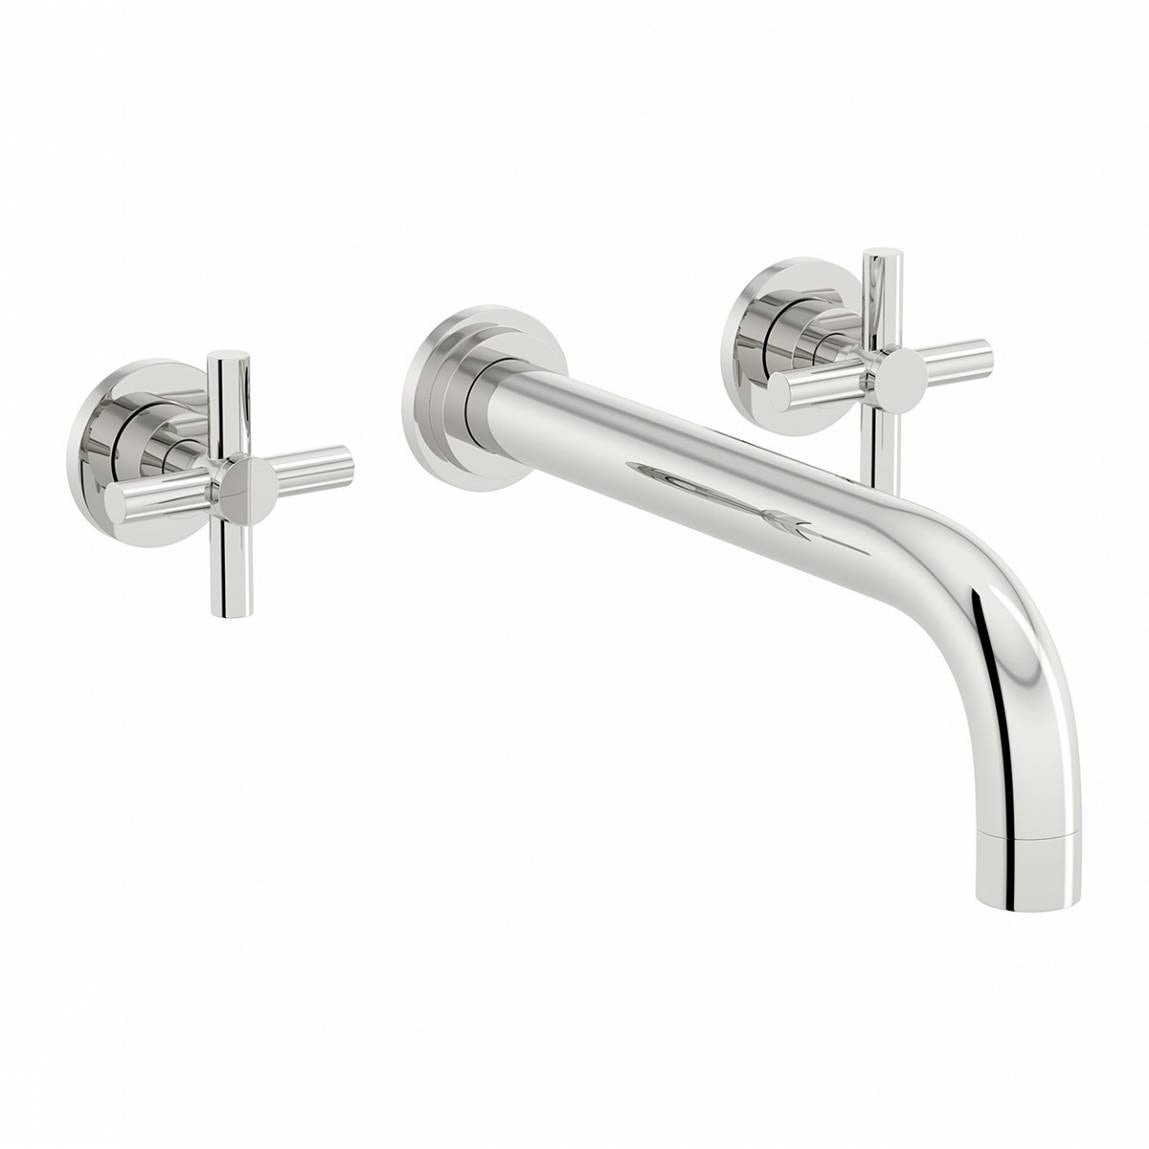 Tate Wall Mounted Bath Mixer